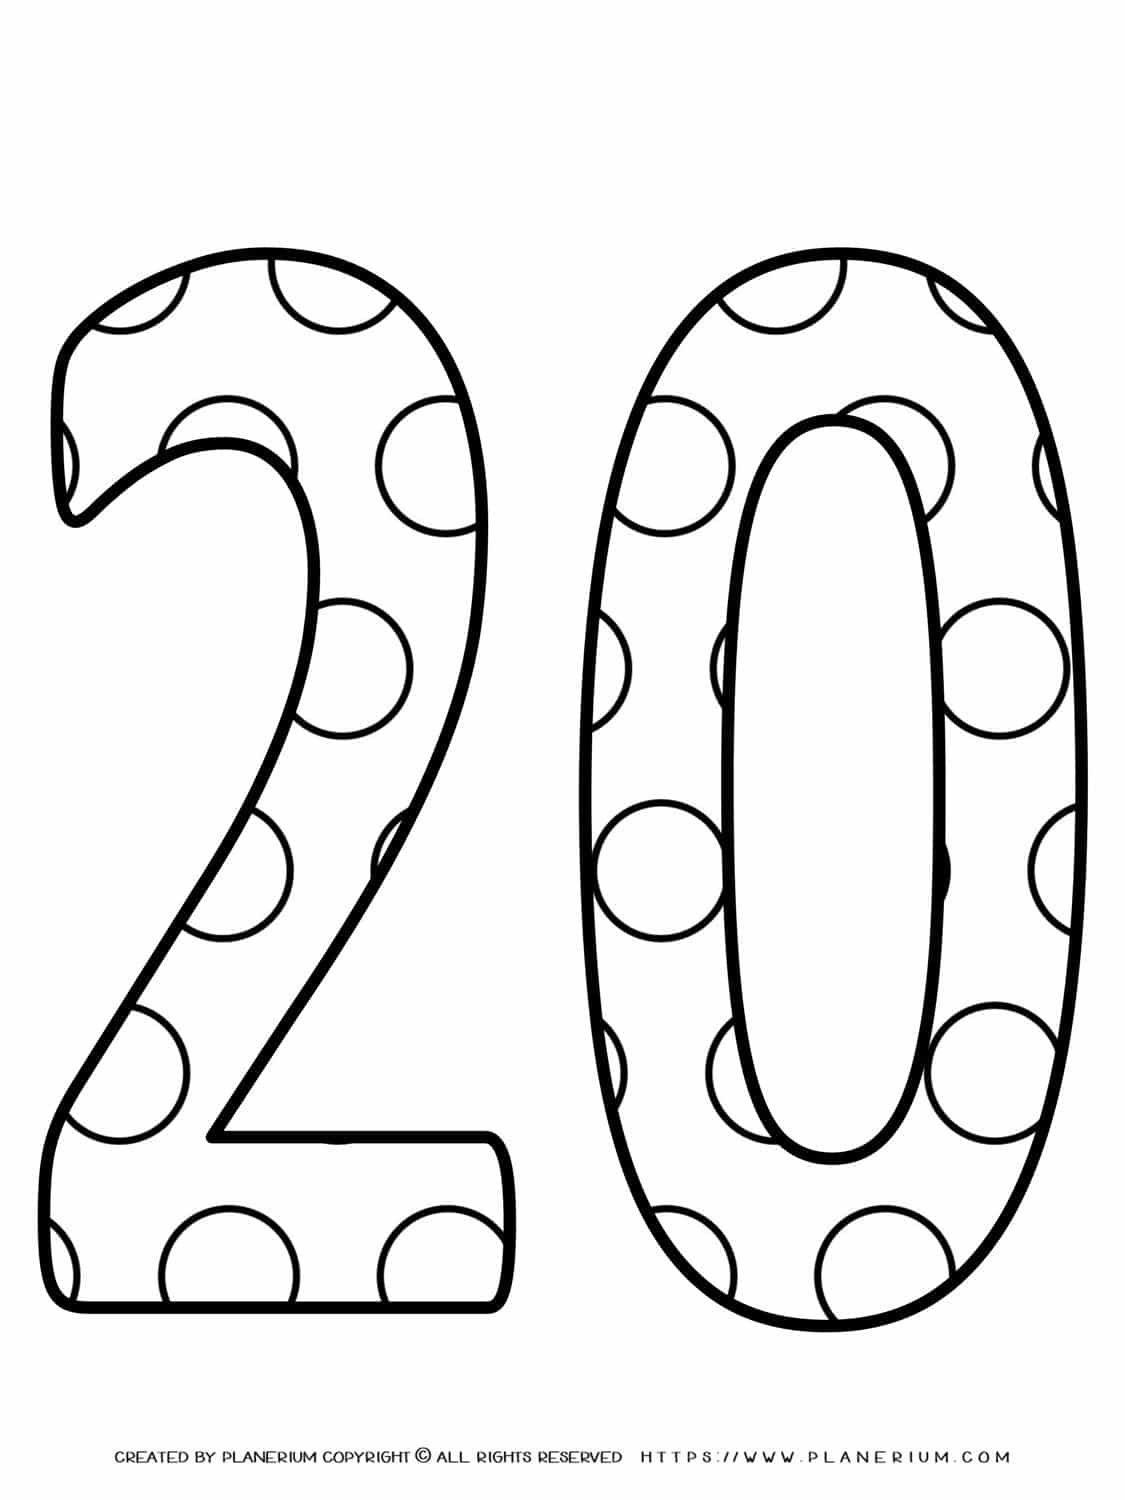 Numbers Coloring Pages - Decorated Twenty | Planerium